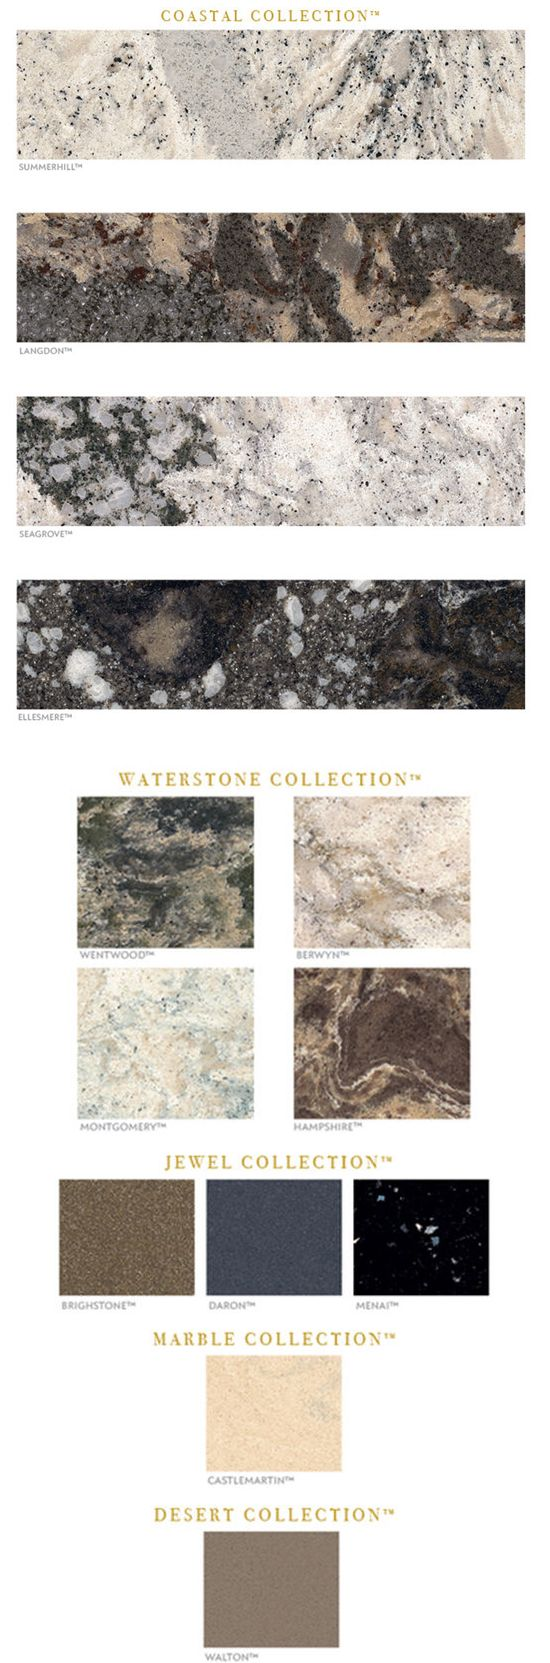 Grigio msi quartz denver shower doors amp denver granite countertops - Jumbo Slab Cambria Quartz Countertops Now Available More